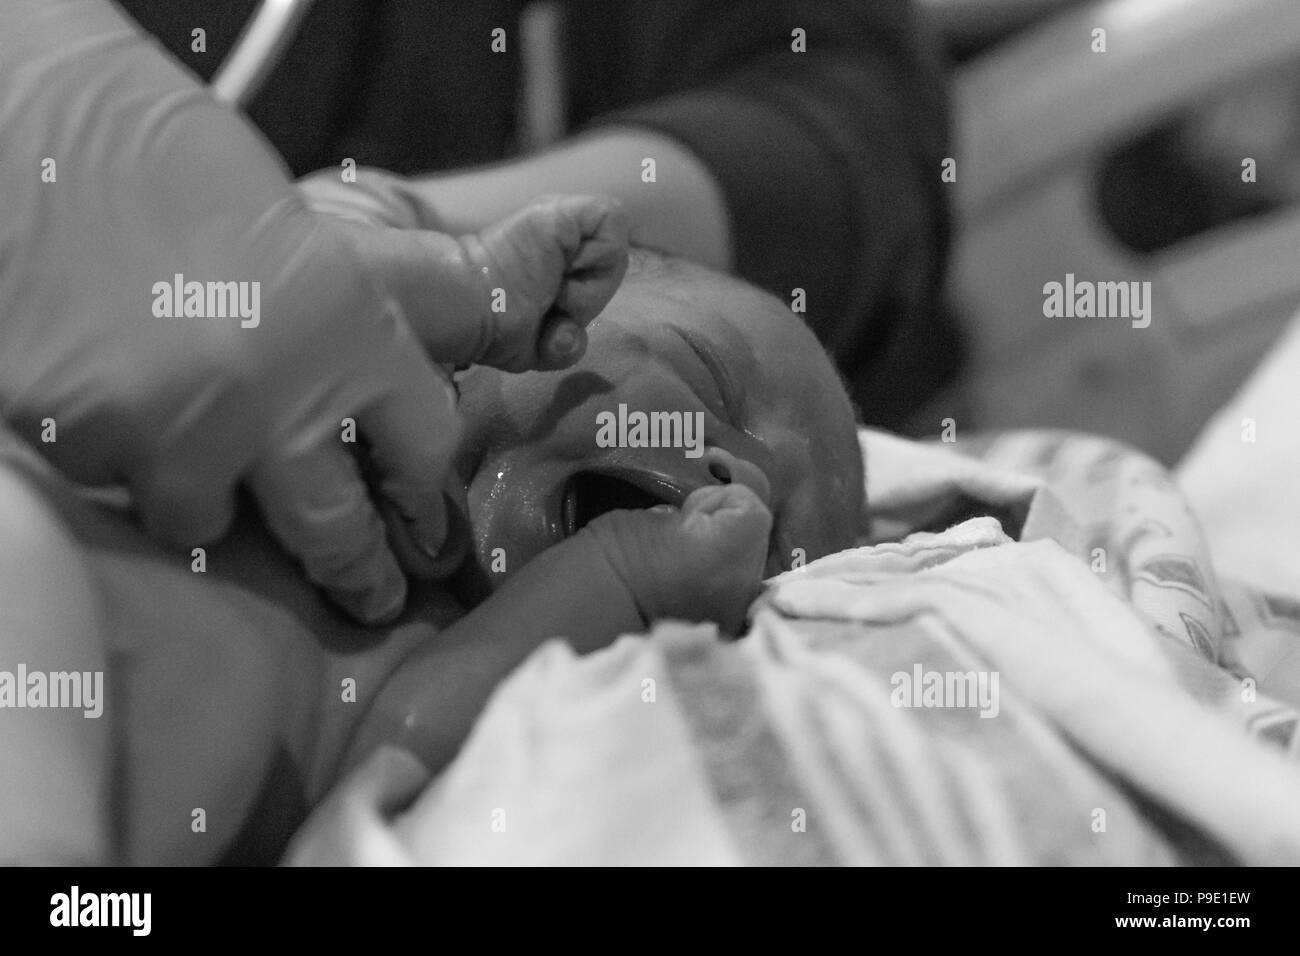 The miracle of life unfolds as Miss Kallie makes her way into the world - Stock Image